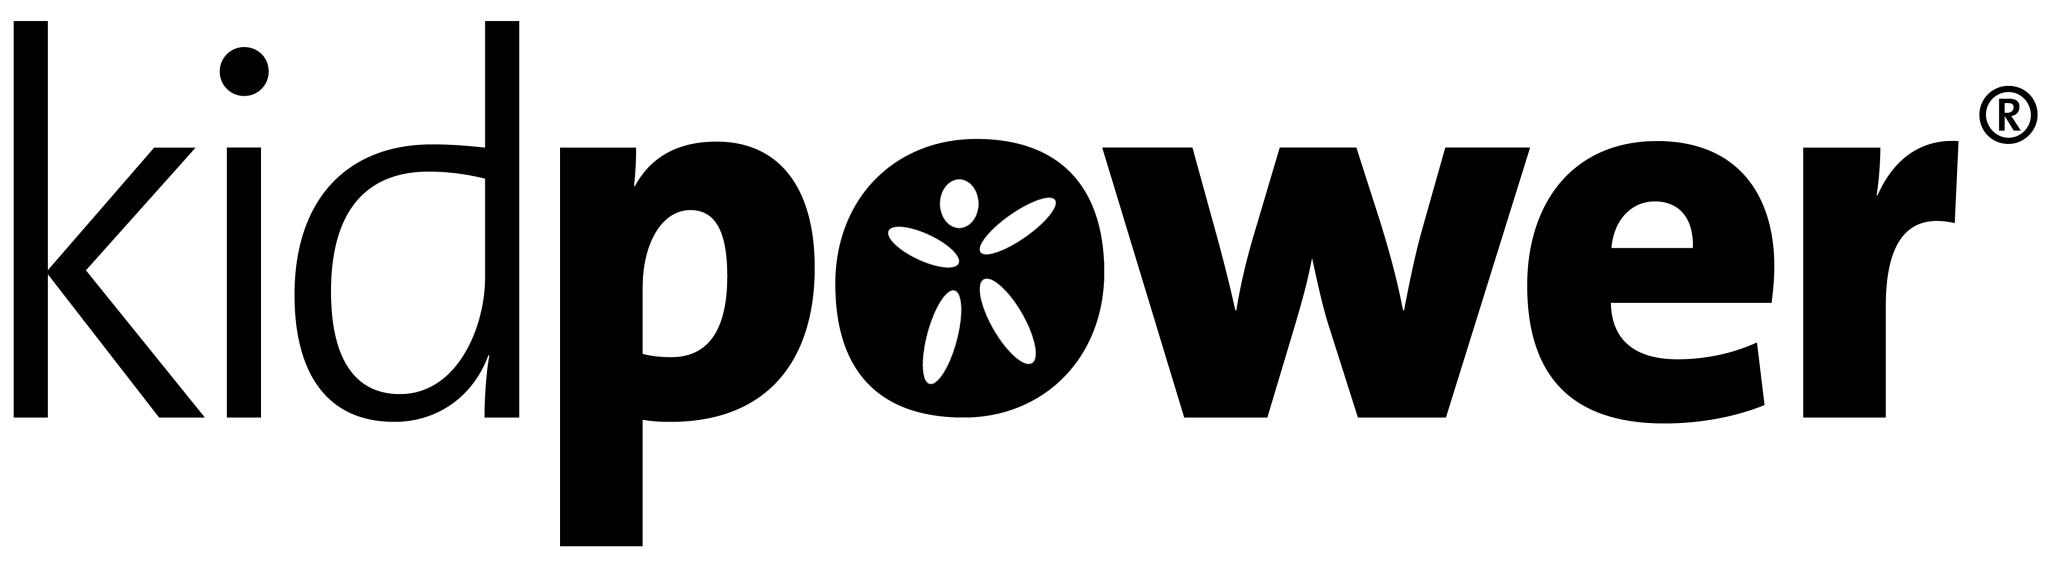 Kidpower Logo - Black & White